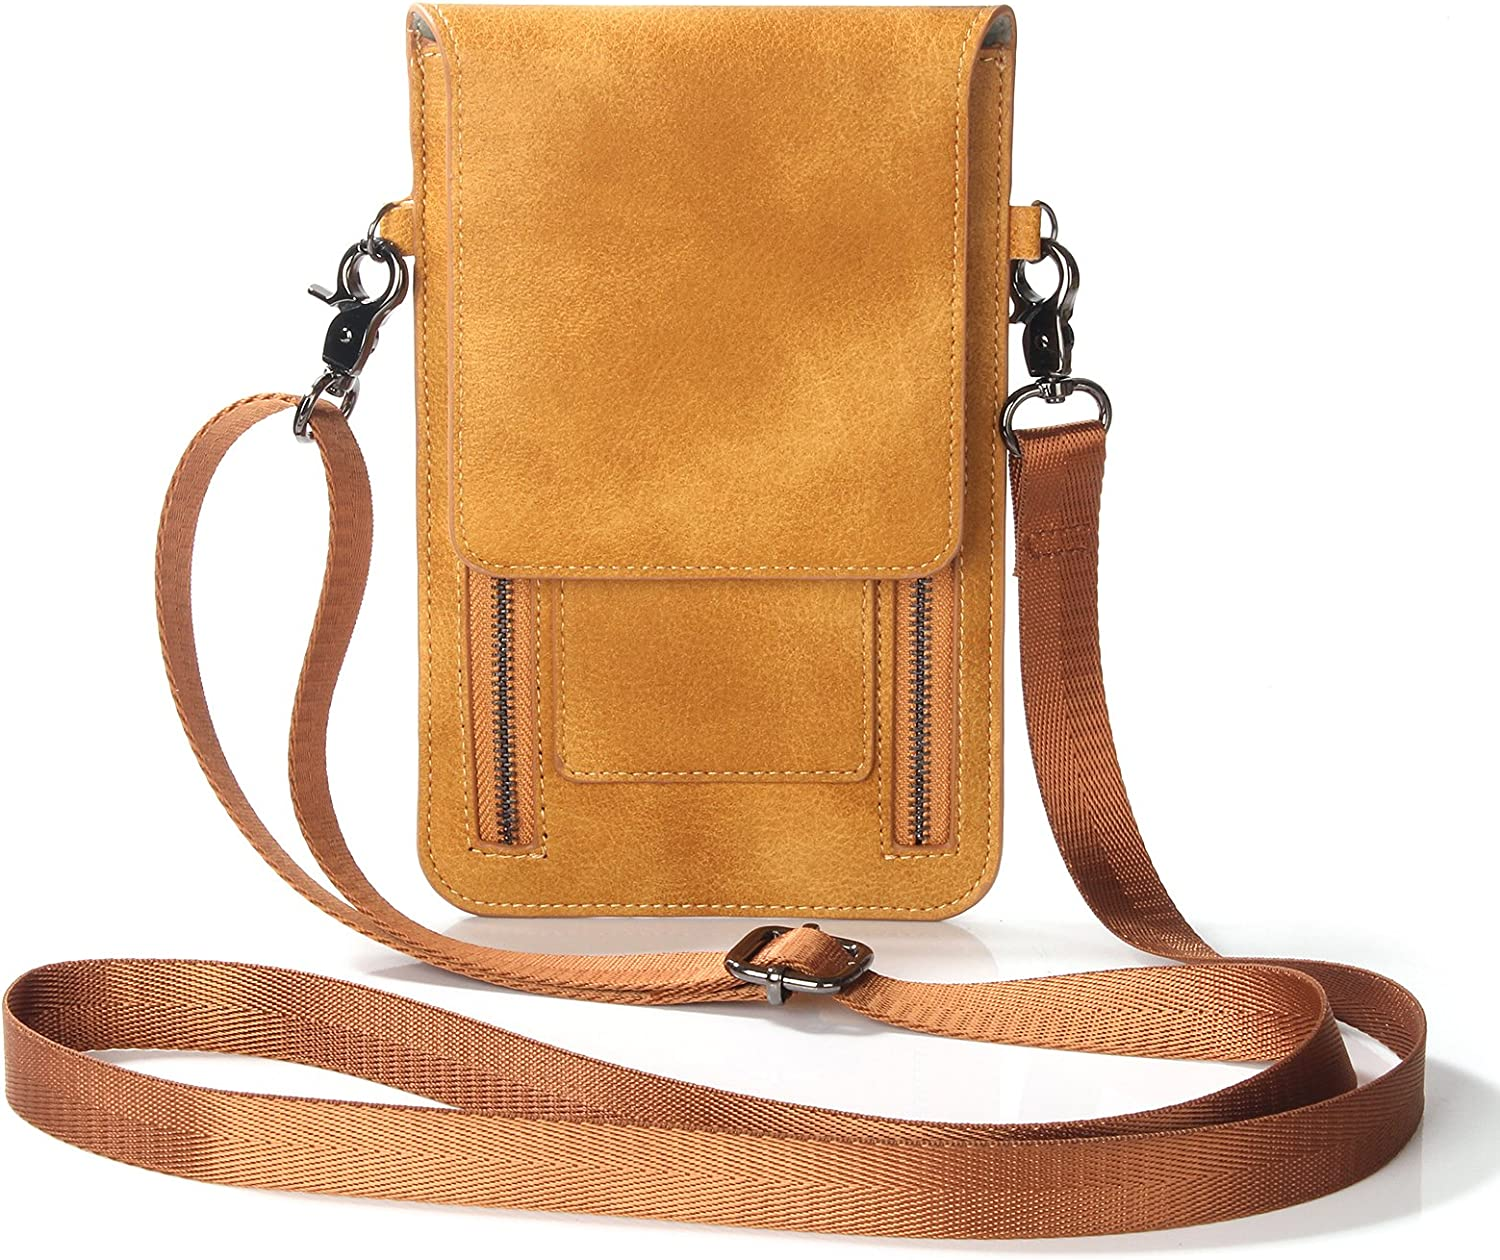 PU Leather Roomy Women Cell Phone Sleeve Purse Carrying Case Crossbody Bag Cards Slot for iPhone X/8 Plus/Samsung Galaxy Note 8/S9 Plus/LG G7 ThinQ/G6/Stylo3/Motorola Moto Z2 Force/Z3 Play/G6 (Tan)